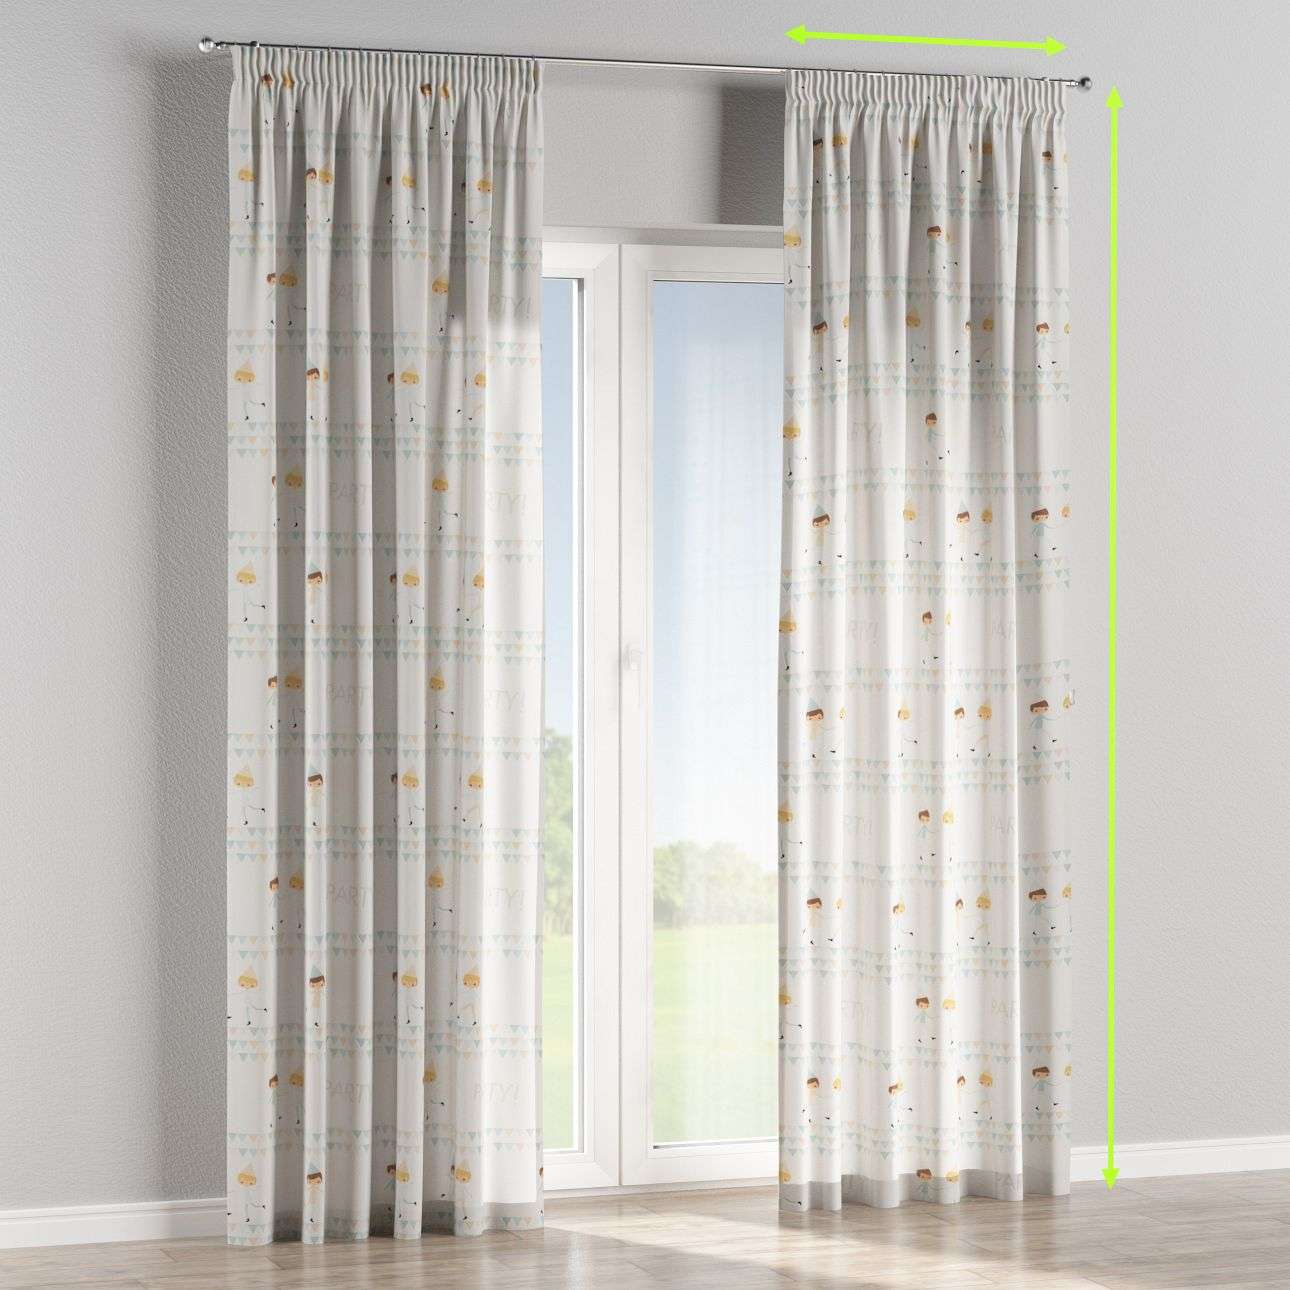 Pencil pleat lined curtains in collection Apanona, fabric: 151-01